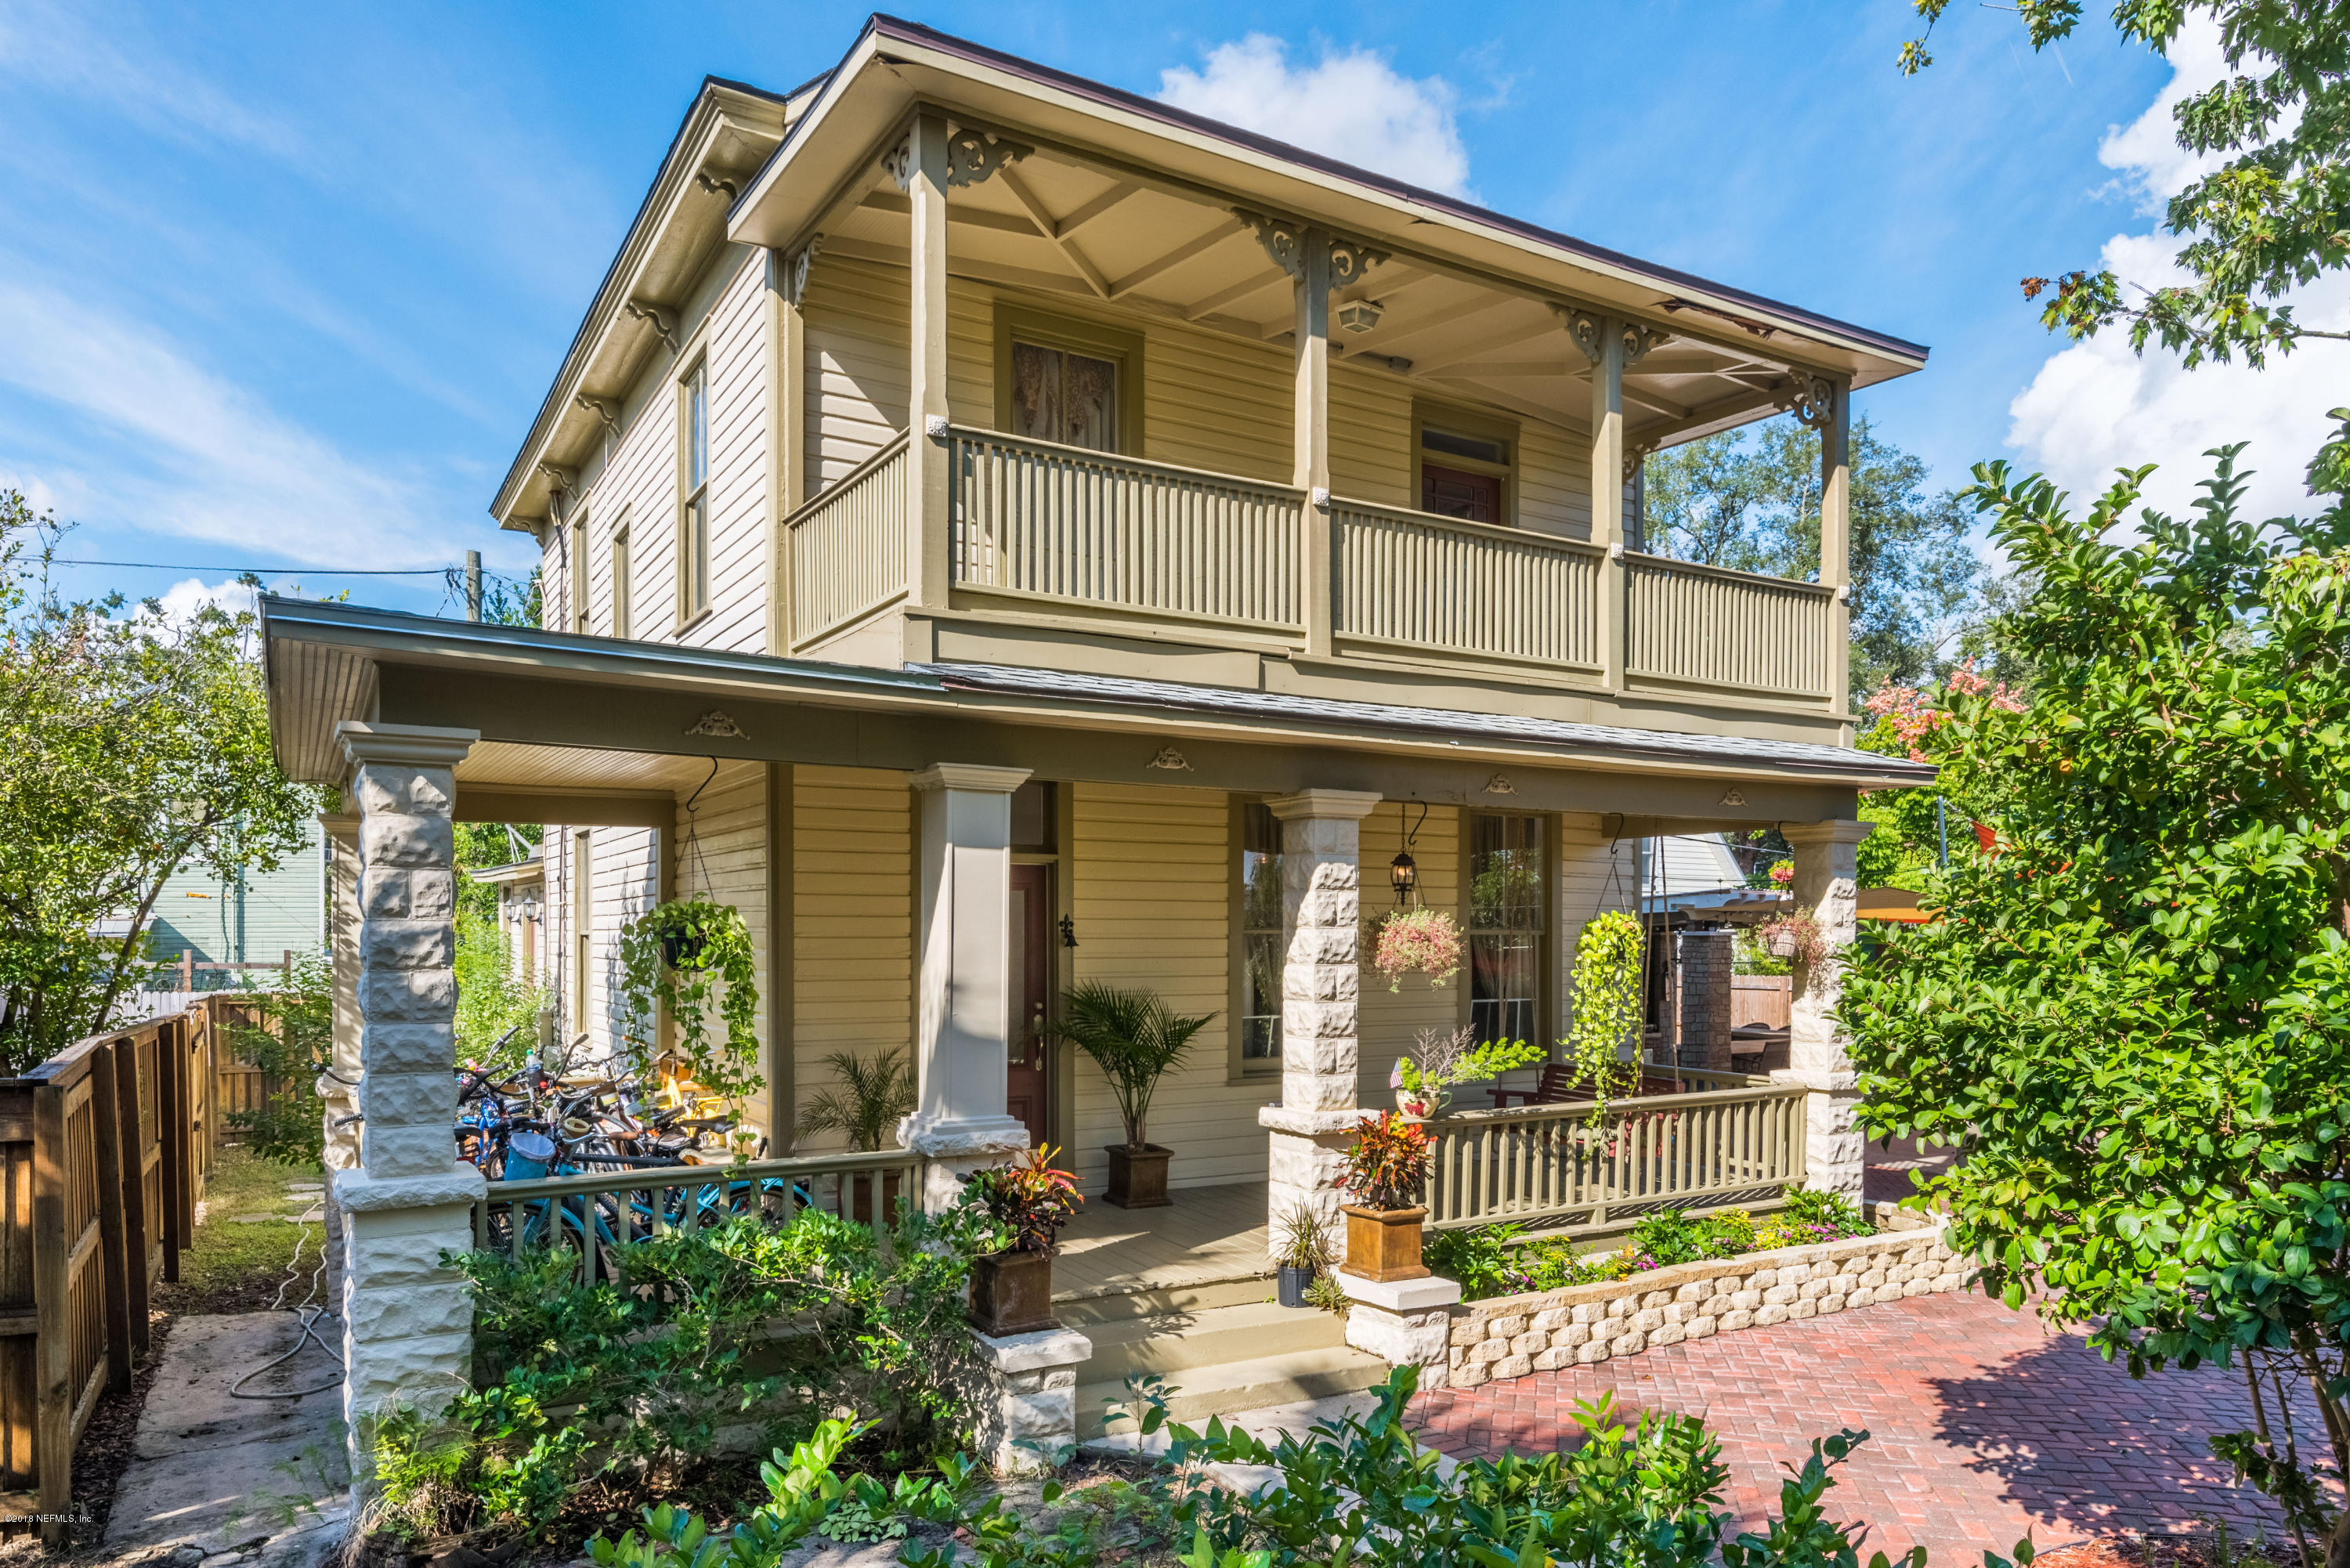 25 5TH, JACKSONVILLE, FLORIDA 32206, 3 Bedrooms Bedrooms, ,2 BathroomsBathrooms,Residential - single family,For sale,5TH,967510